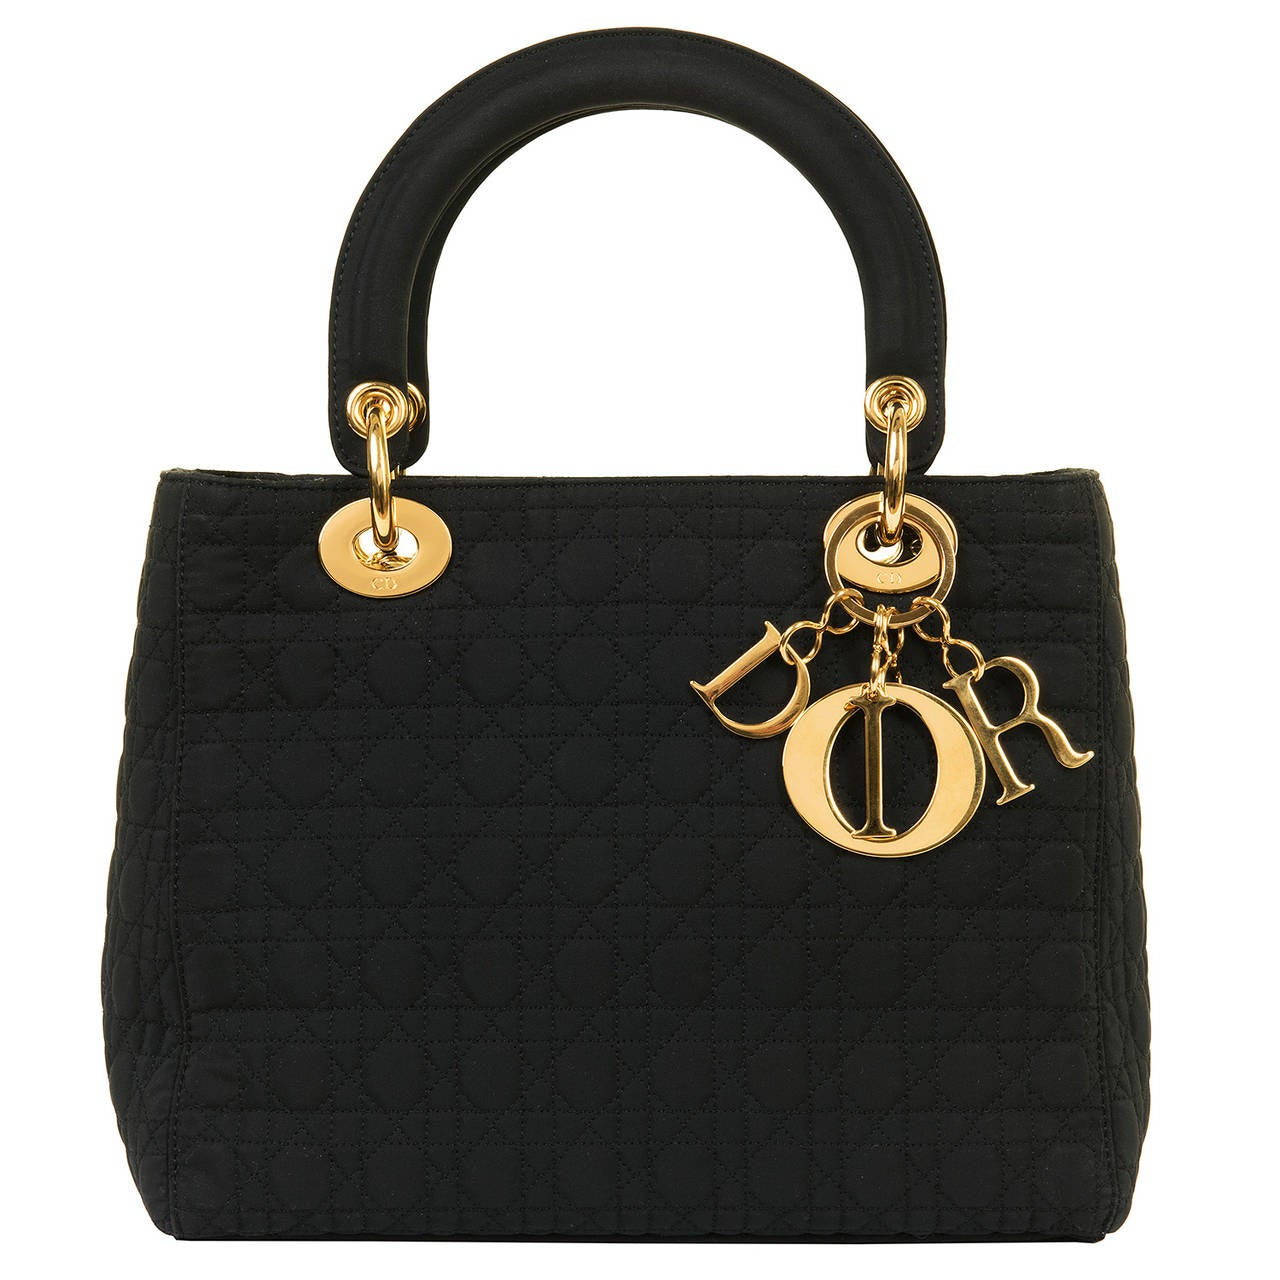 WOW! Dior 'Lady Dior' 25cm Black Quilted Bag with Goldtone Hardware 2